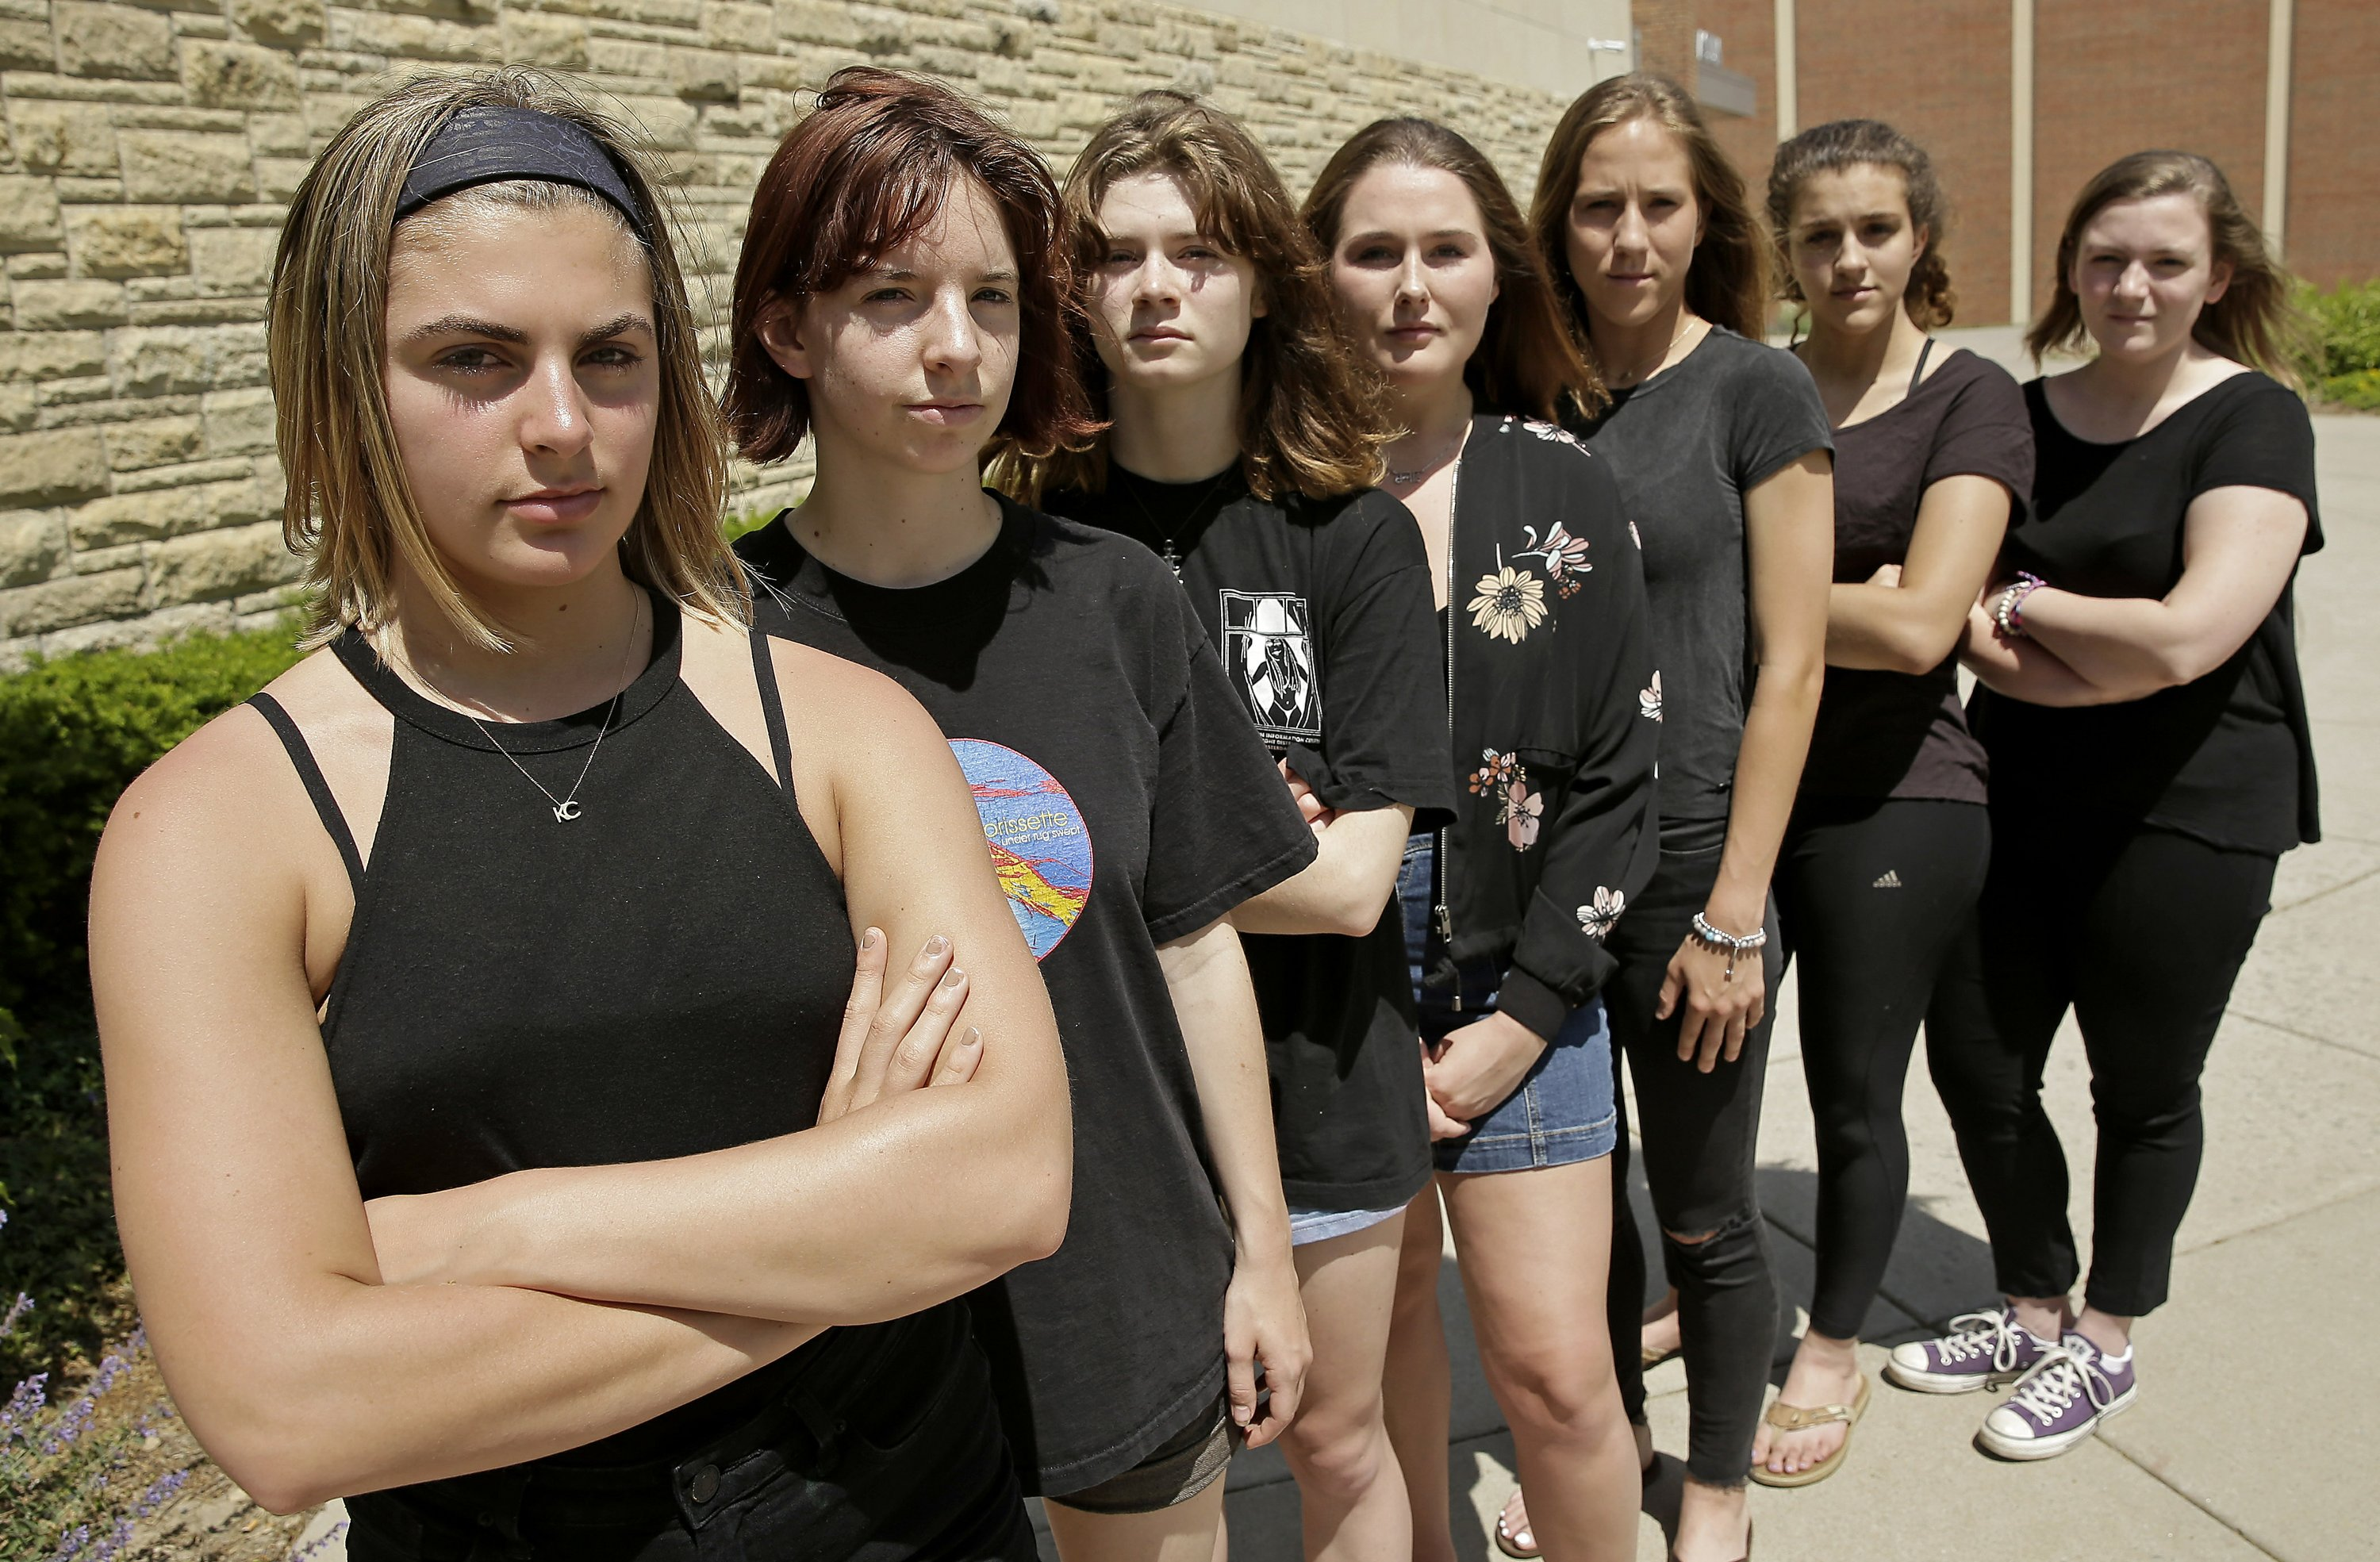 Grassroots efforts grapple with sex violence in US schools